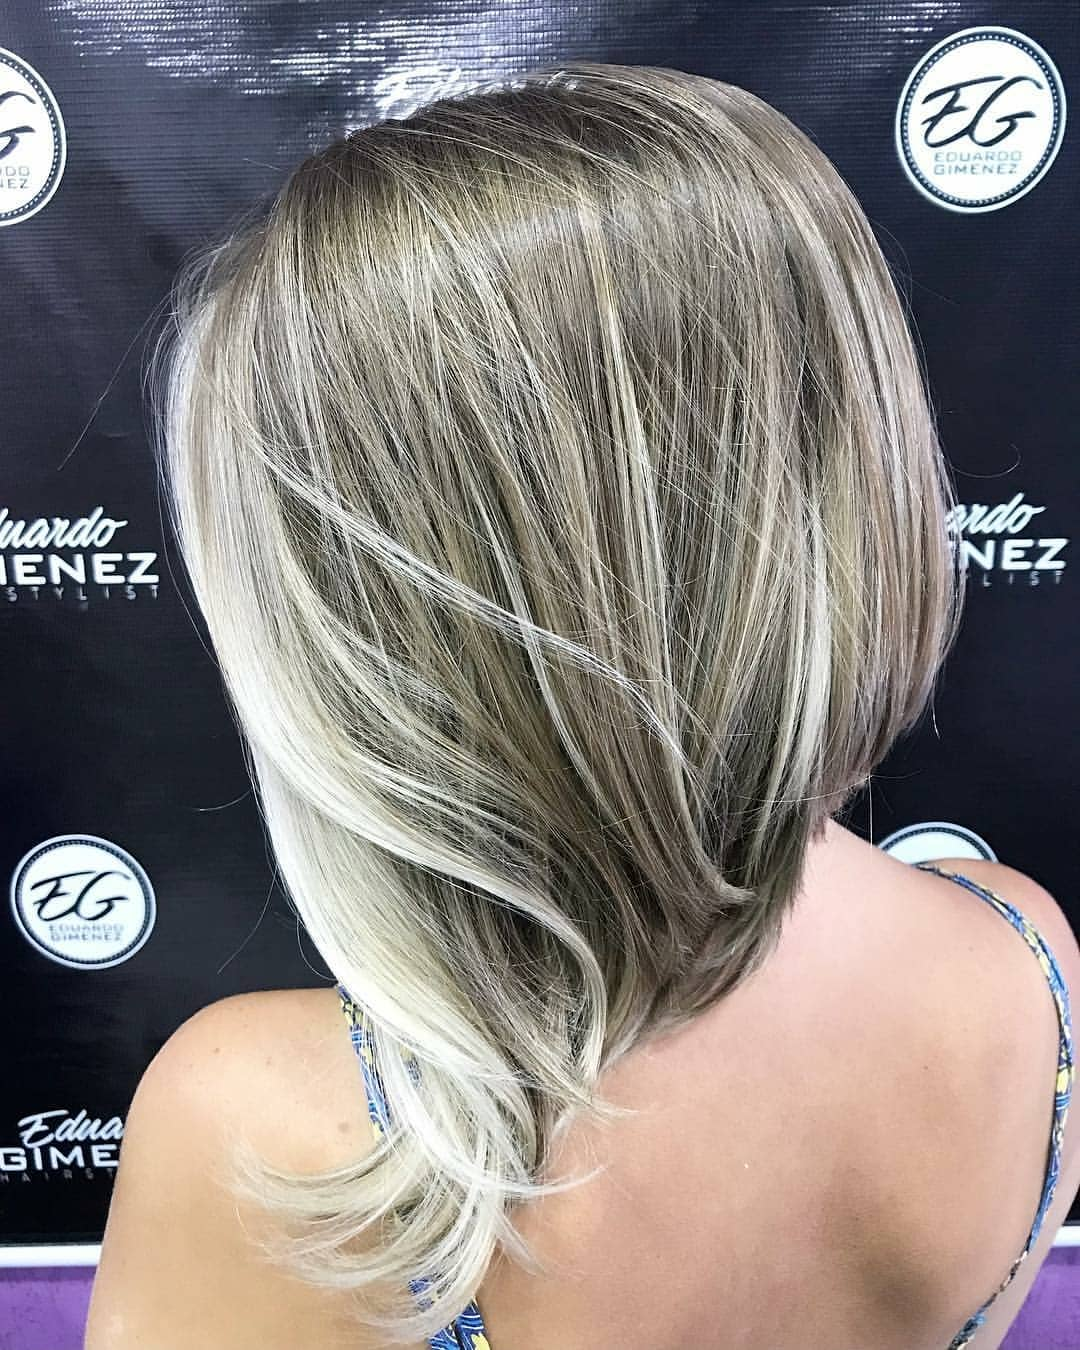 Sensational Shoulder Length Haircuts, Women Medium Hairstyles for Thick Hair